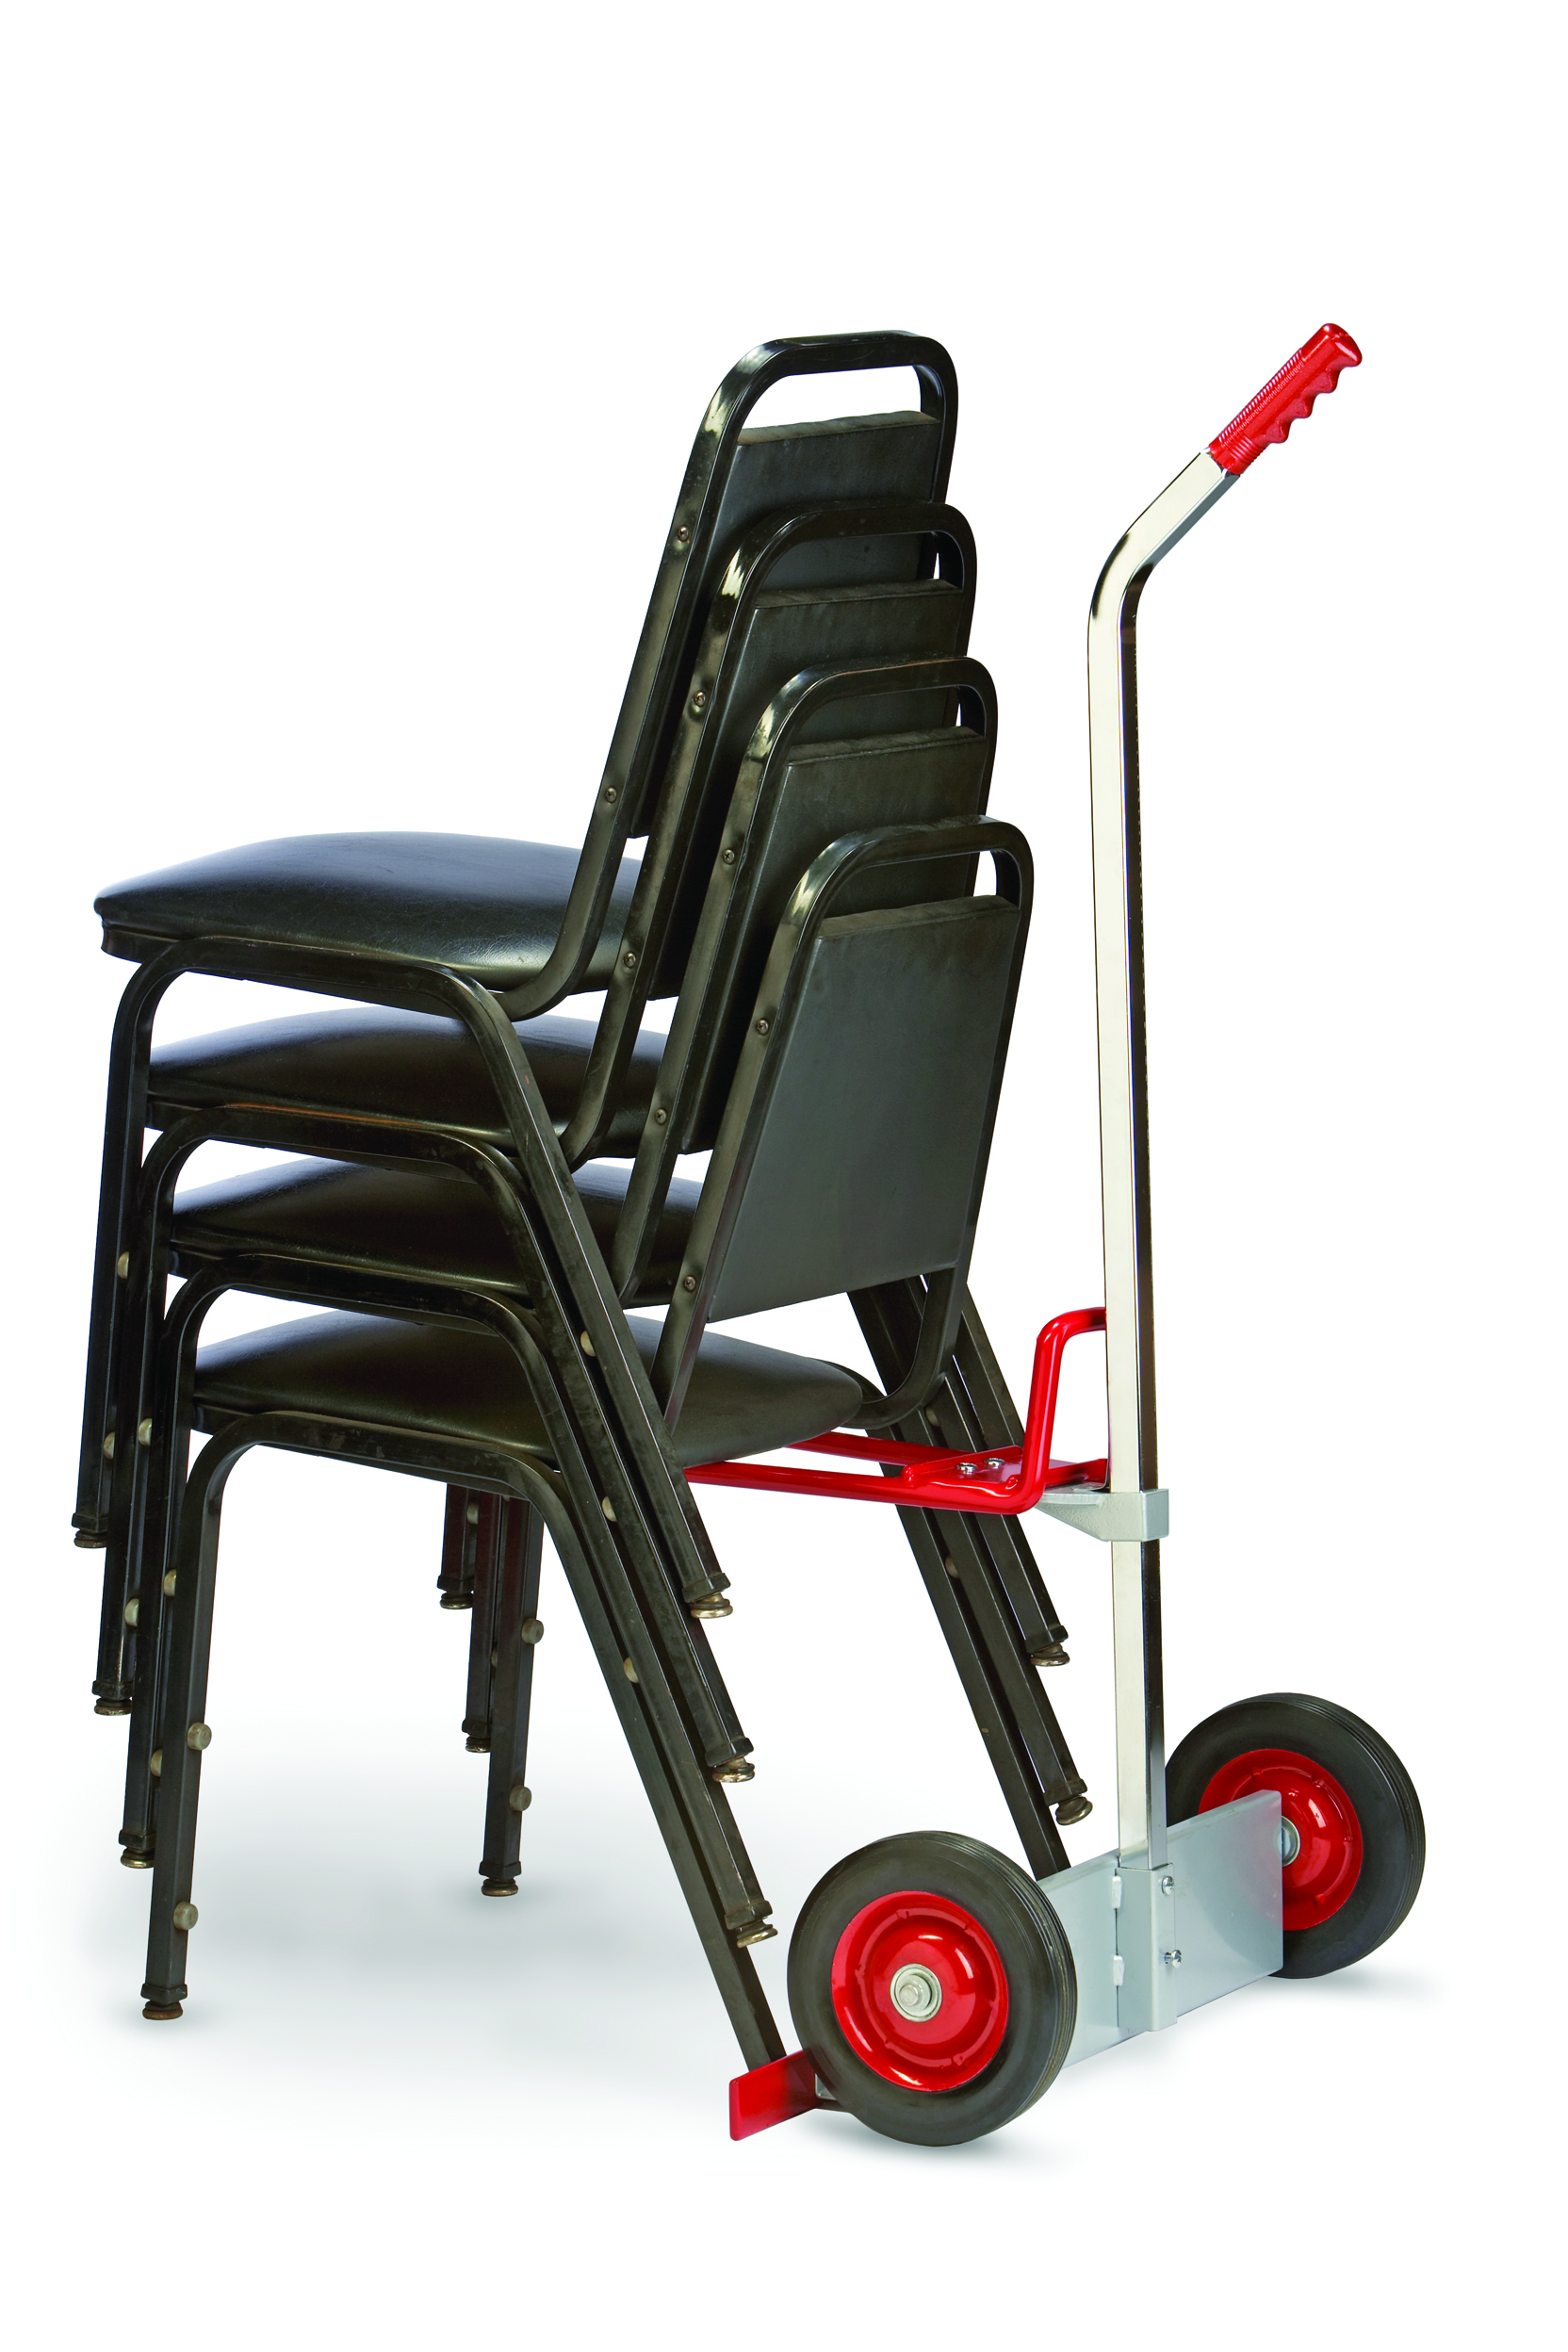 Student Desk Mover 700 with Chairs